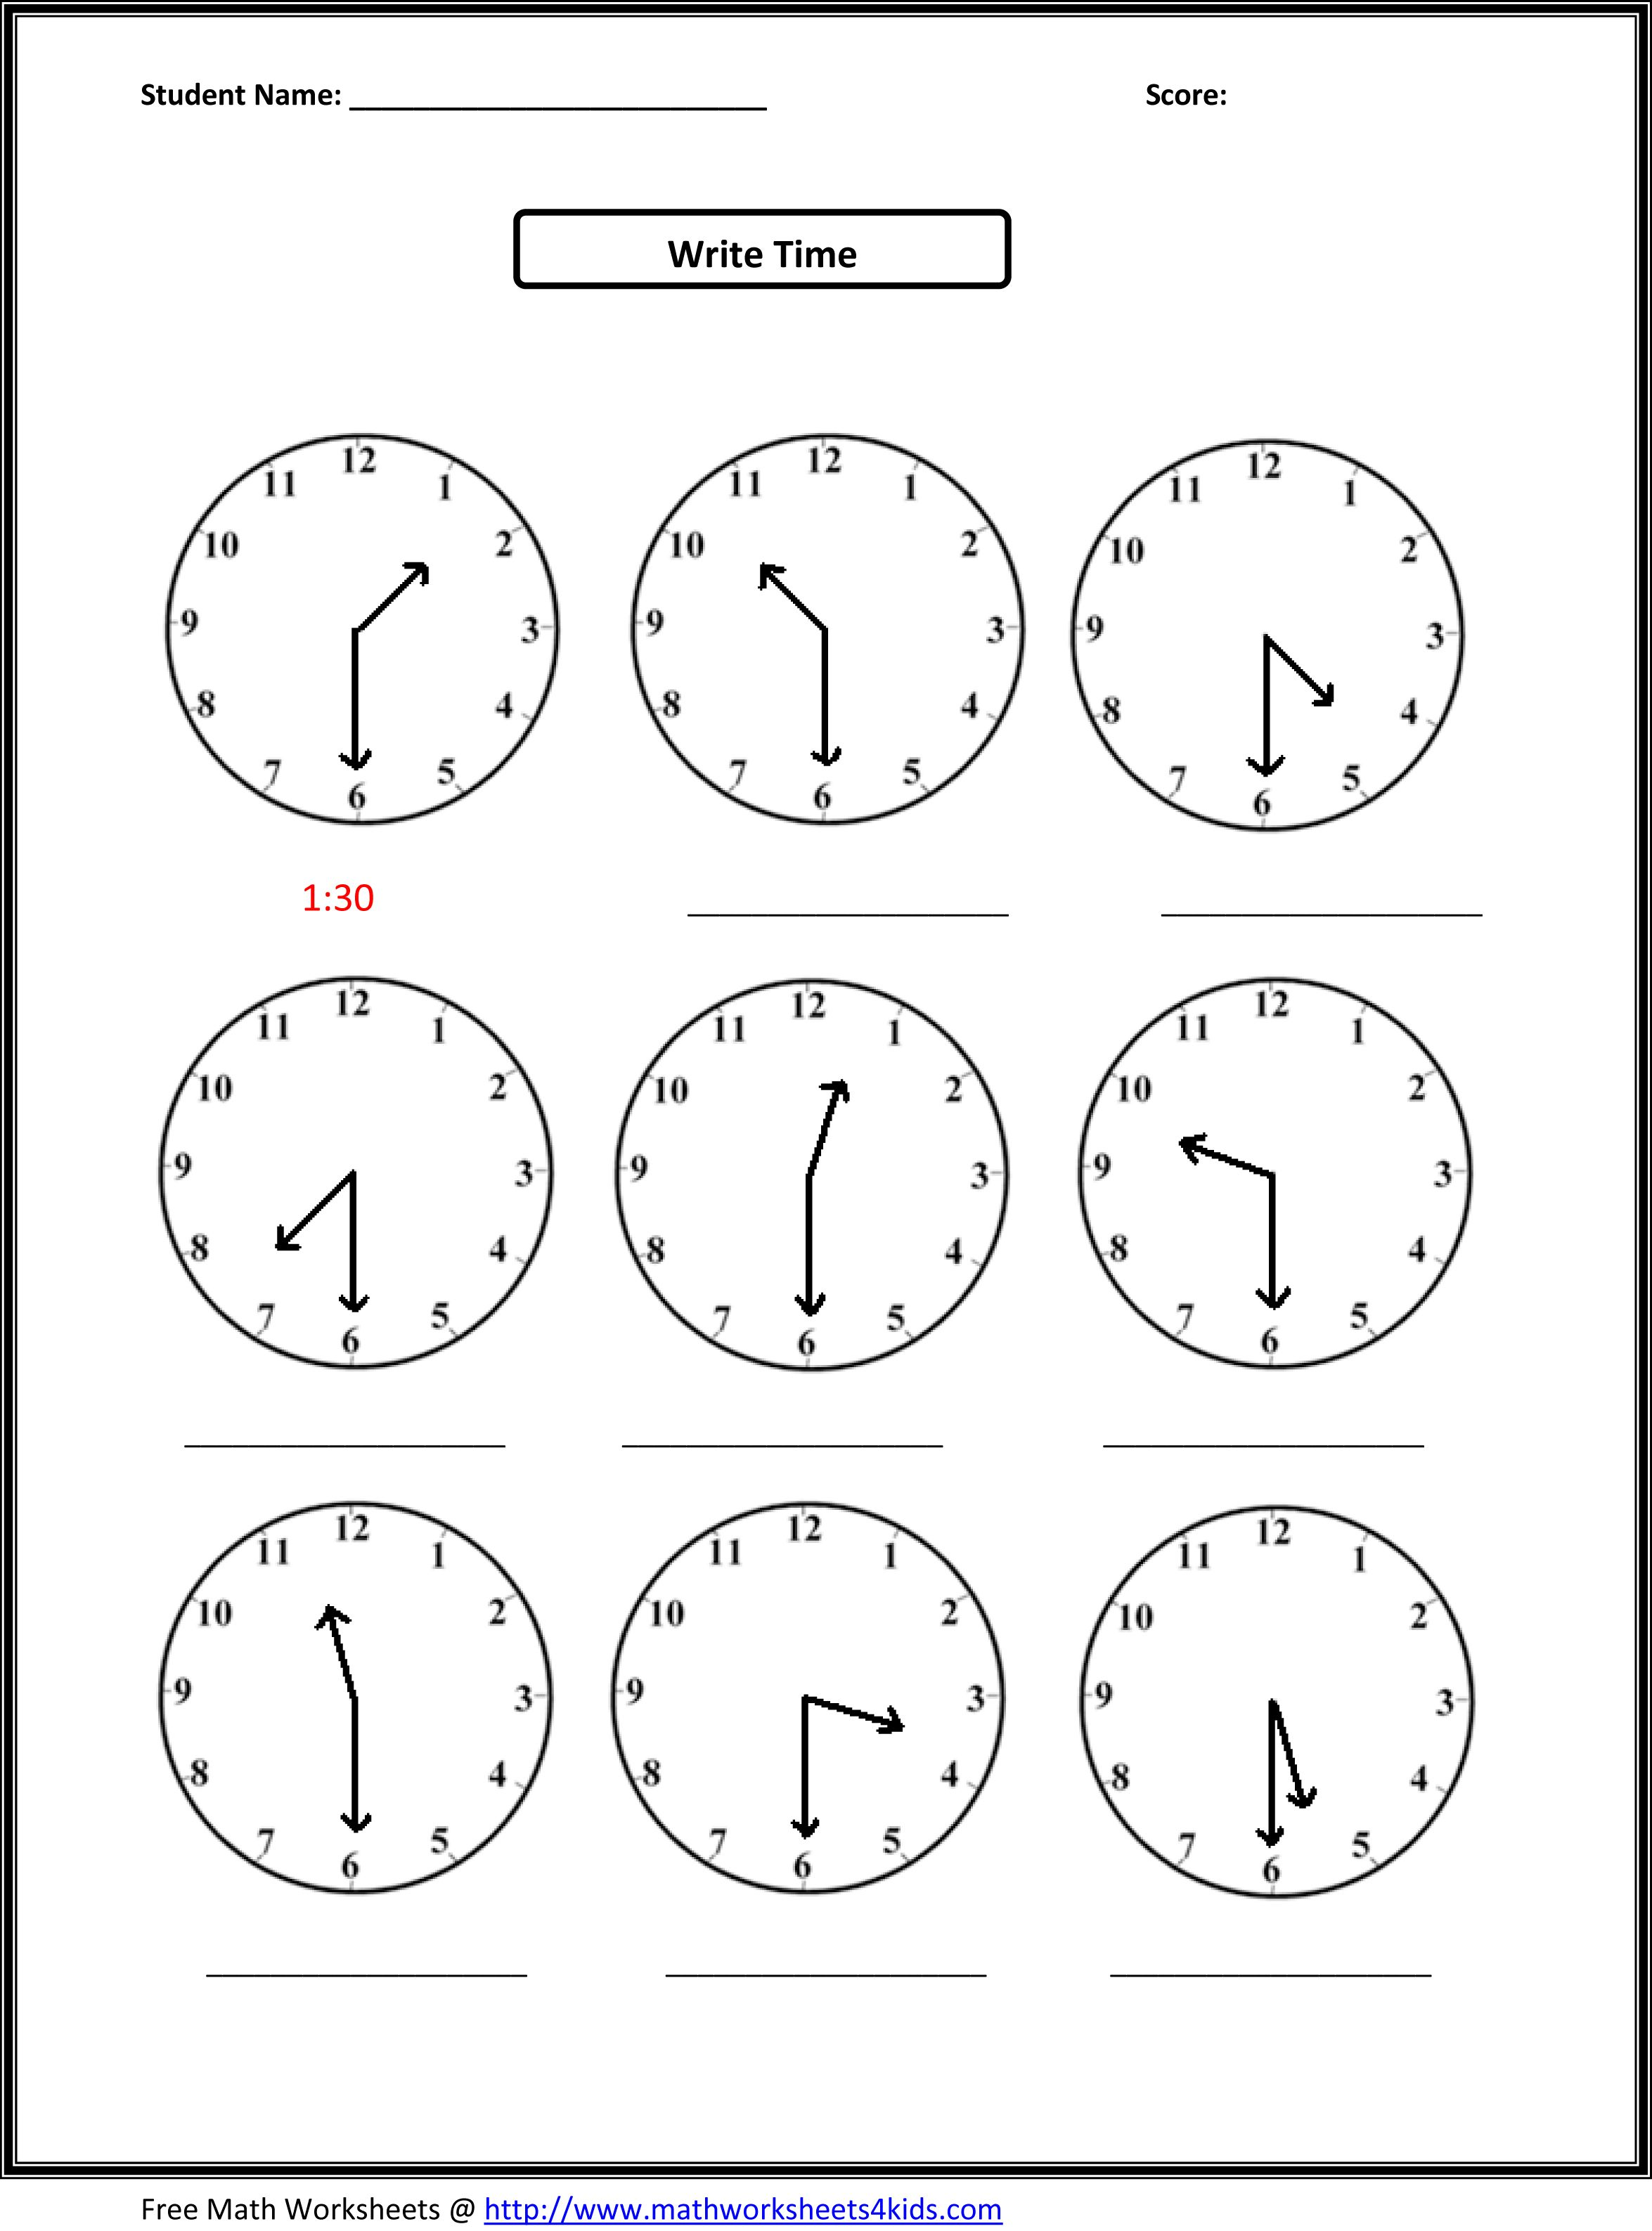 Weirdmailus  Scenic Worksheet On Time For Grade   Reocurent With Remarkable Free Printable Telling Time Worksheets Nd Grade  Reocurent With Beauteous Free Printable Fractions Worksheets Also Worksheets On Distributive Property In Addition Self Respect Worksheets And Adding And Subtracting Mixed Numbers With Unlike Denominators Worksheet As Well As Adverb Worksheet Rd Grade Additionally Math Printable Worksheets Th Grade From Reocurentcom With Weirdmailus  Remarkable Worksheet On Time For Grade   Reocurent With Beauteous Free Printable Telling Time Worksheets Nd Grade  Reocurent And Scenic Free Printable Fractions Worksheets Also Worksheets On Distributive Property In Addition Self Respect Worksheets From Reocurentcom